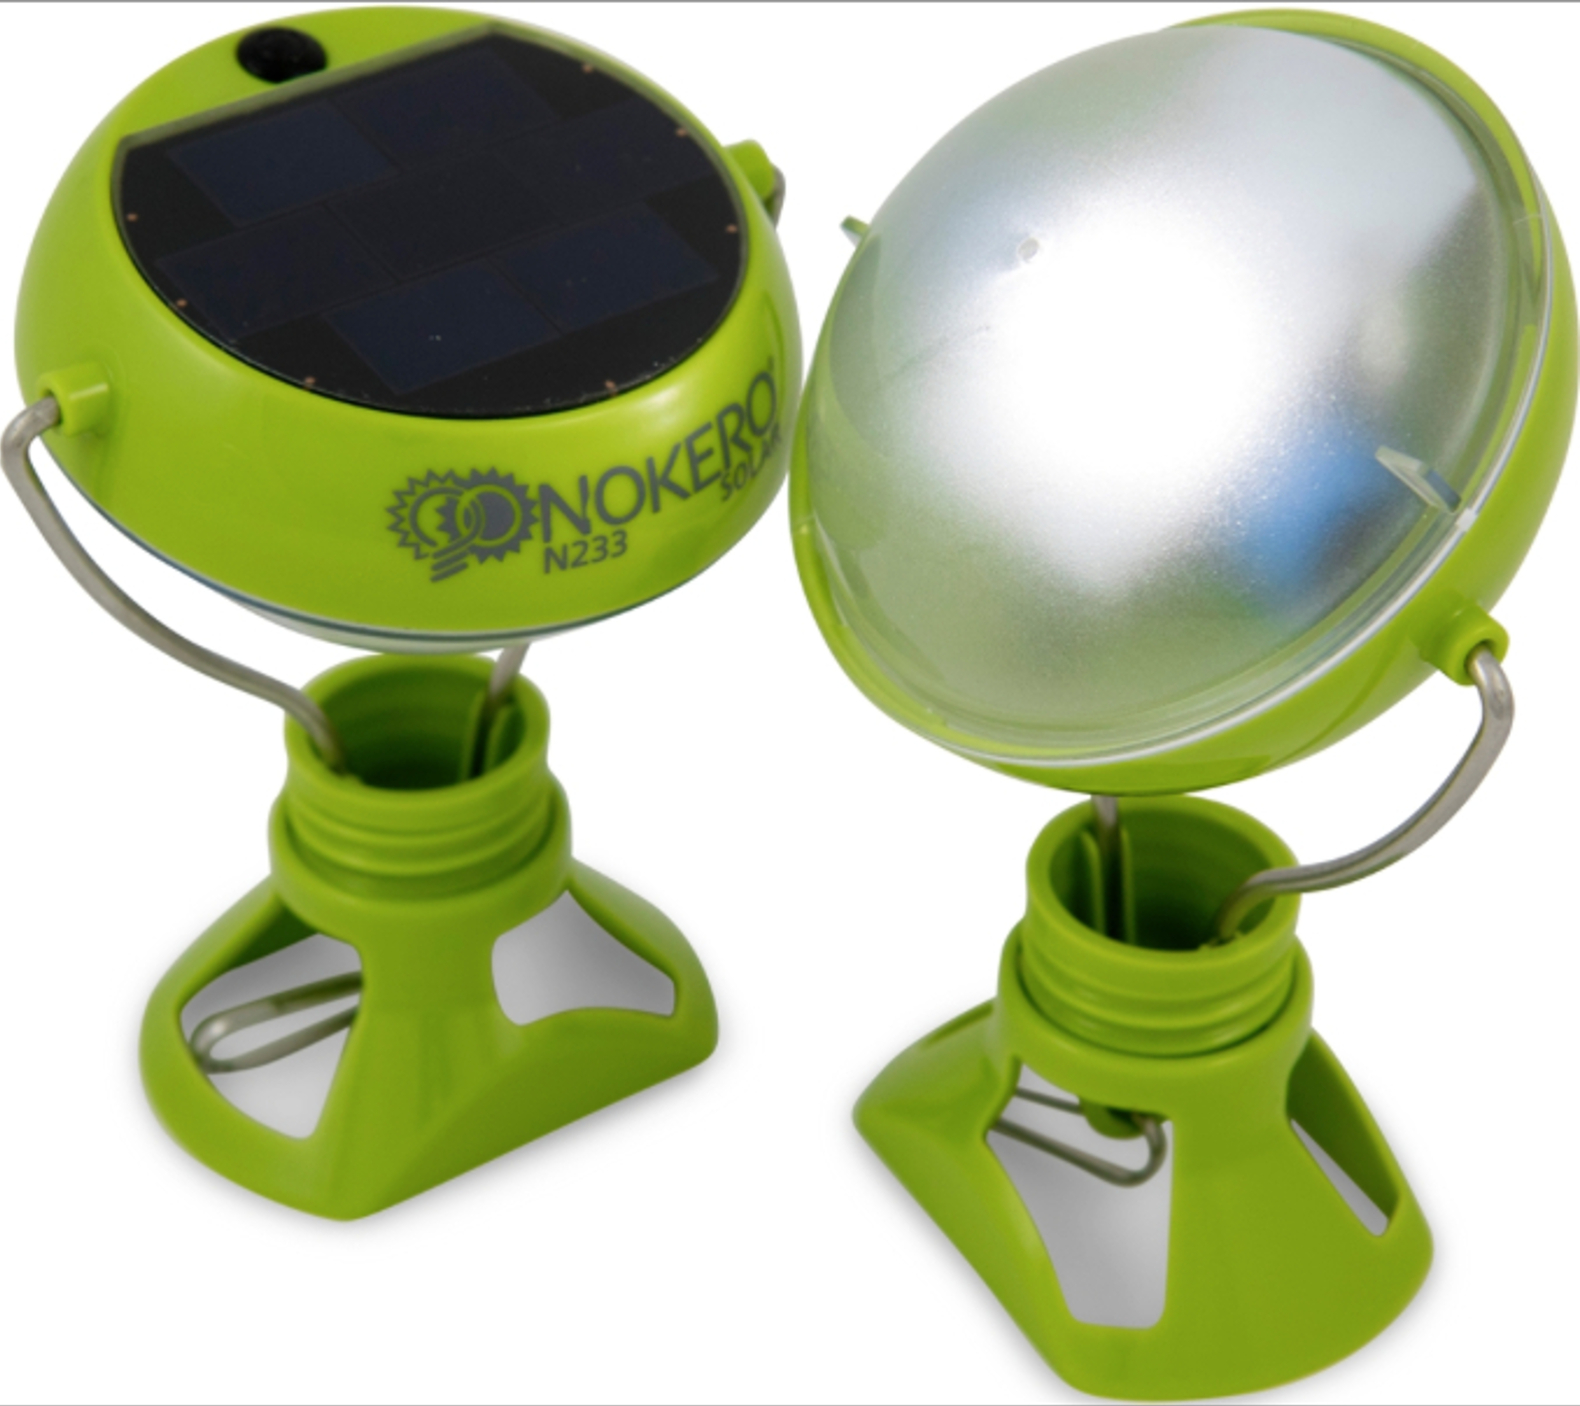 Clean Lighting Company Nokero Is So Proud Of Its Newest Solar Device They Have Called It The Worlds Most Efficient Light N233 Model Just Might Fit